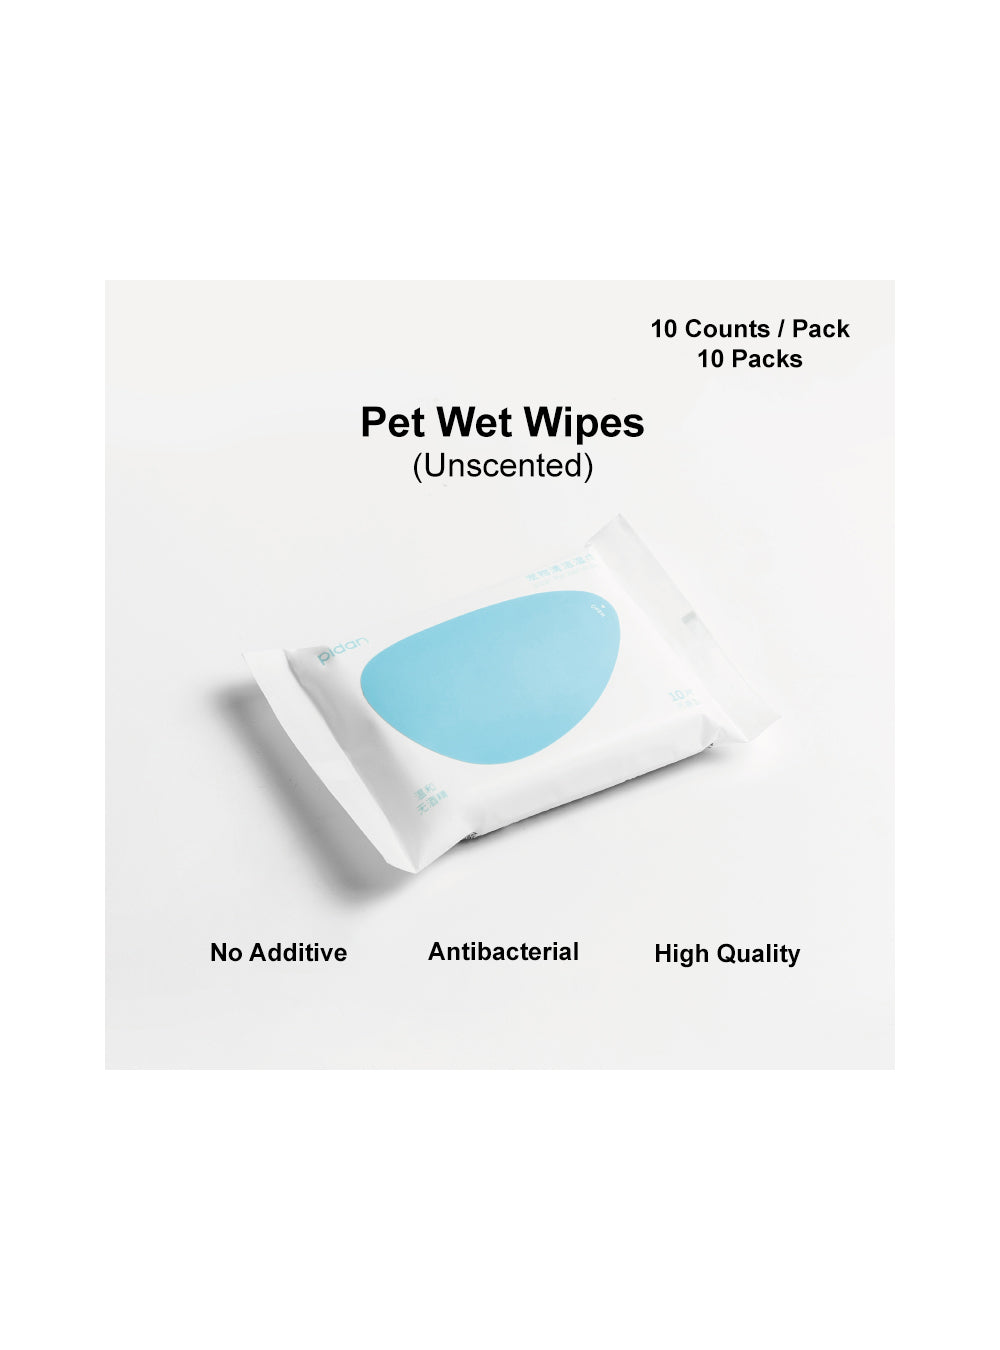 pidan Pet Wet Wipes, 1 bag, 10 packs per bag, 10 Counts per pack